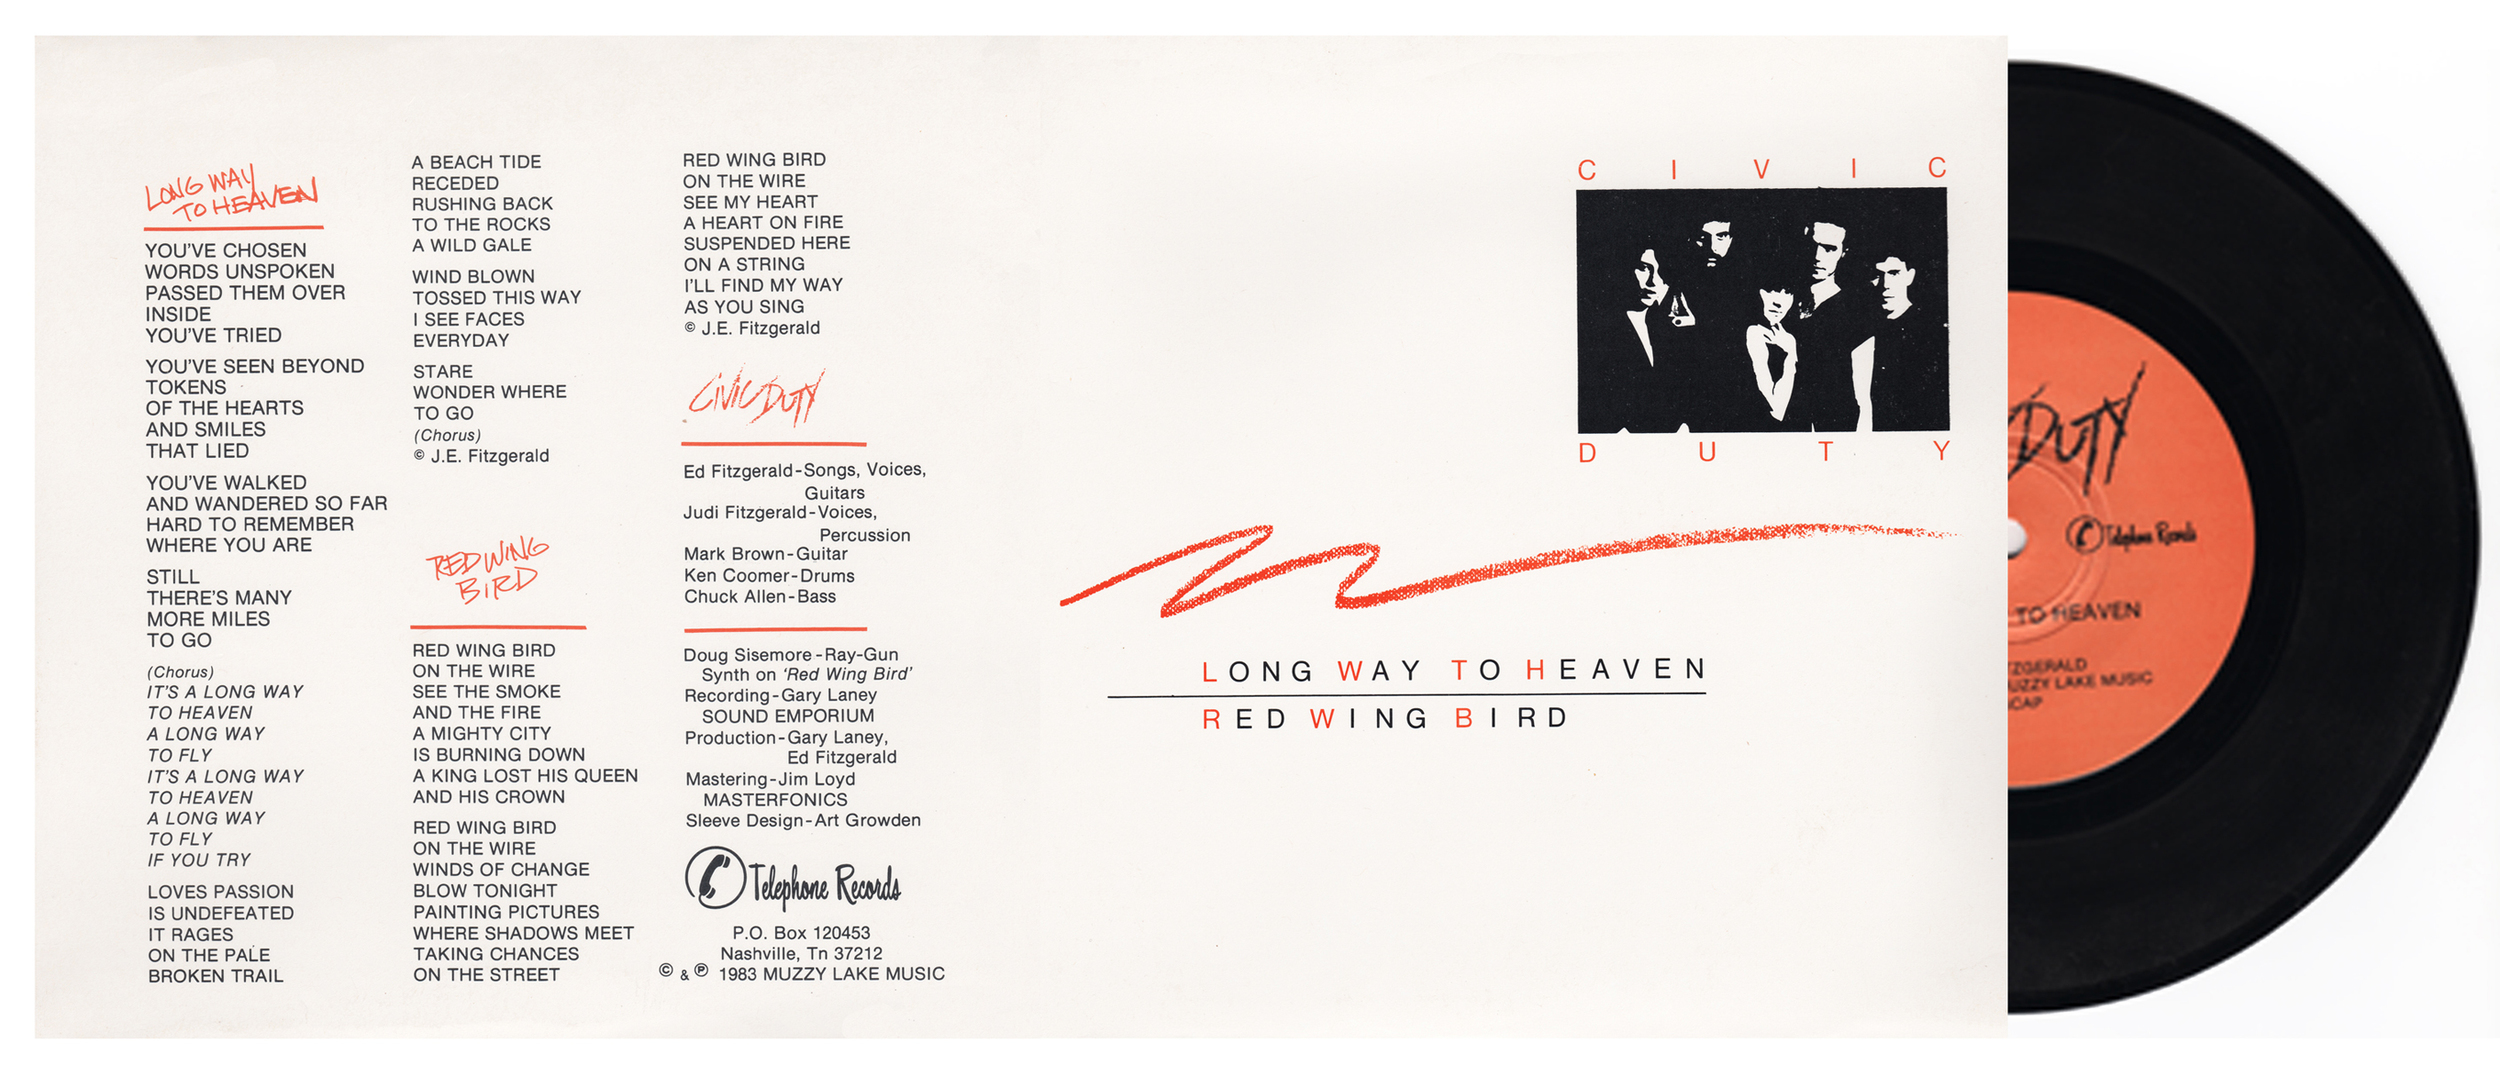 "2  Billboard Recommended  classic tracks:  Long Way To Heaven  b/w  Red Wing Bird   Recorded at  Sound Emporium  A.  Disc Mastering by  Masterfonics .  45 RPM vinyl by  United Record Pressing ..  Small spindle hole.  Virgin shrink-wrapped 8x8 heavy cardstock jacket.  Additional protective vinyl insert sleeve included.  Play it and play it again.   Very limited quantities.     Order Here:  Amazon     Buy the Civic Duty 45RPM and the Civic Duty 12""EP and get the complete SHELTER collection on Compact Disc - FREE ."